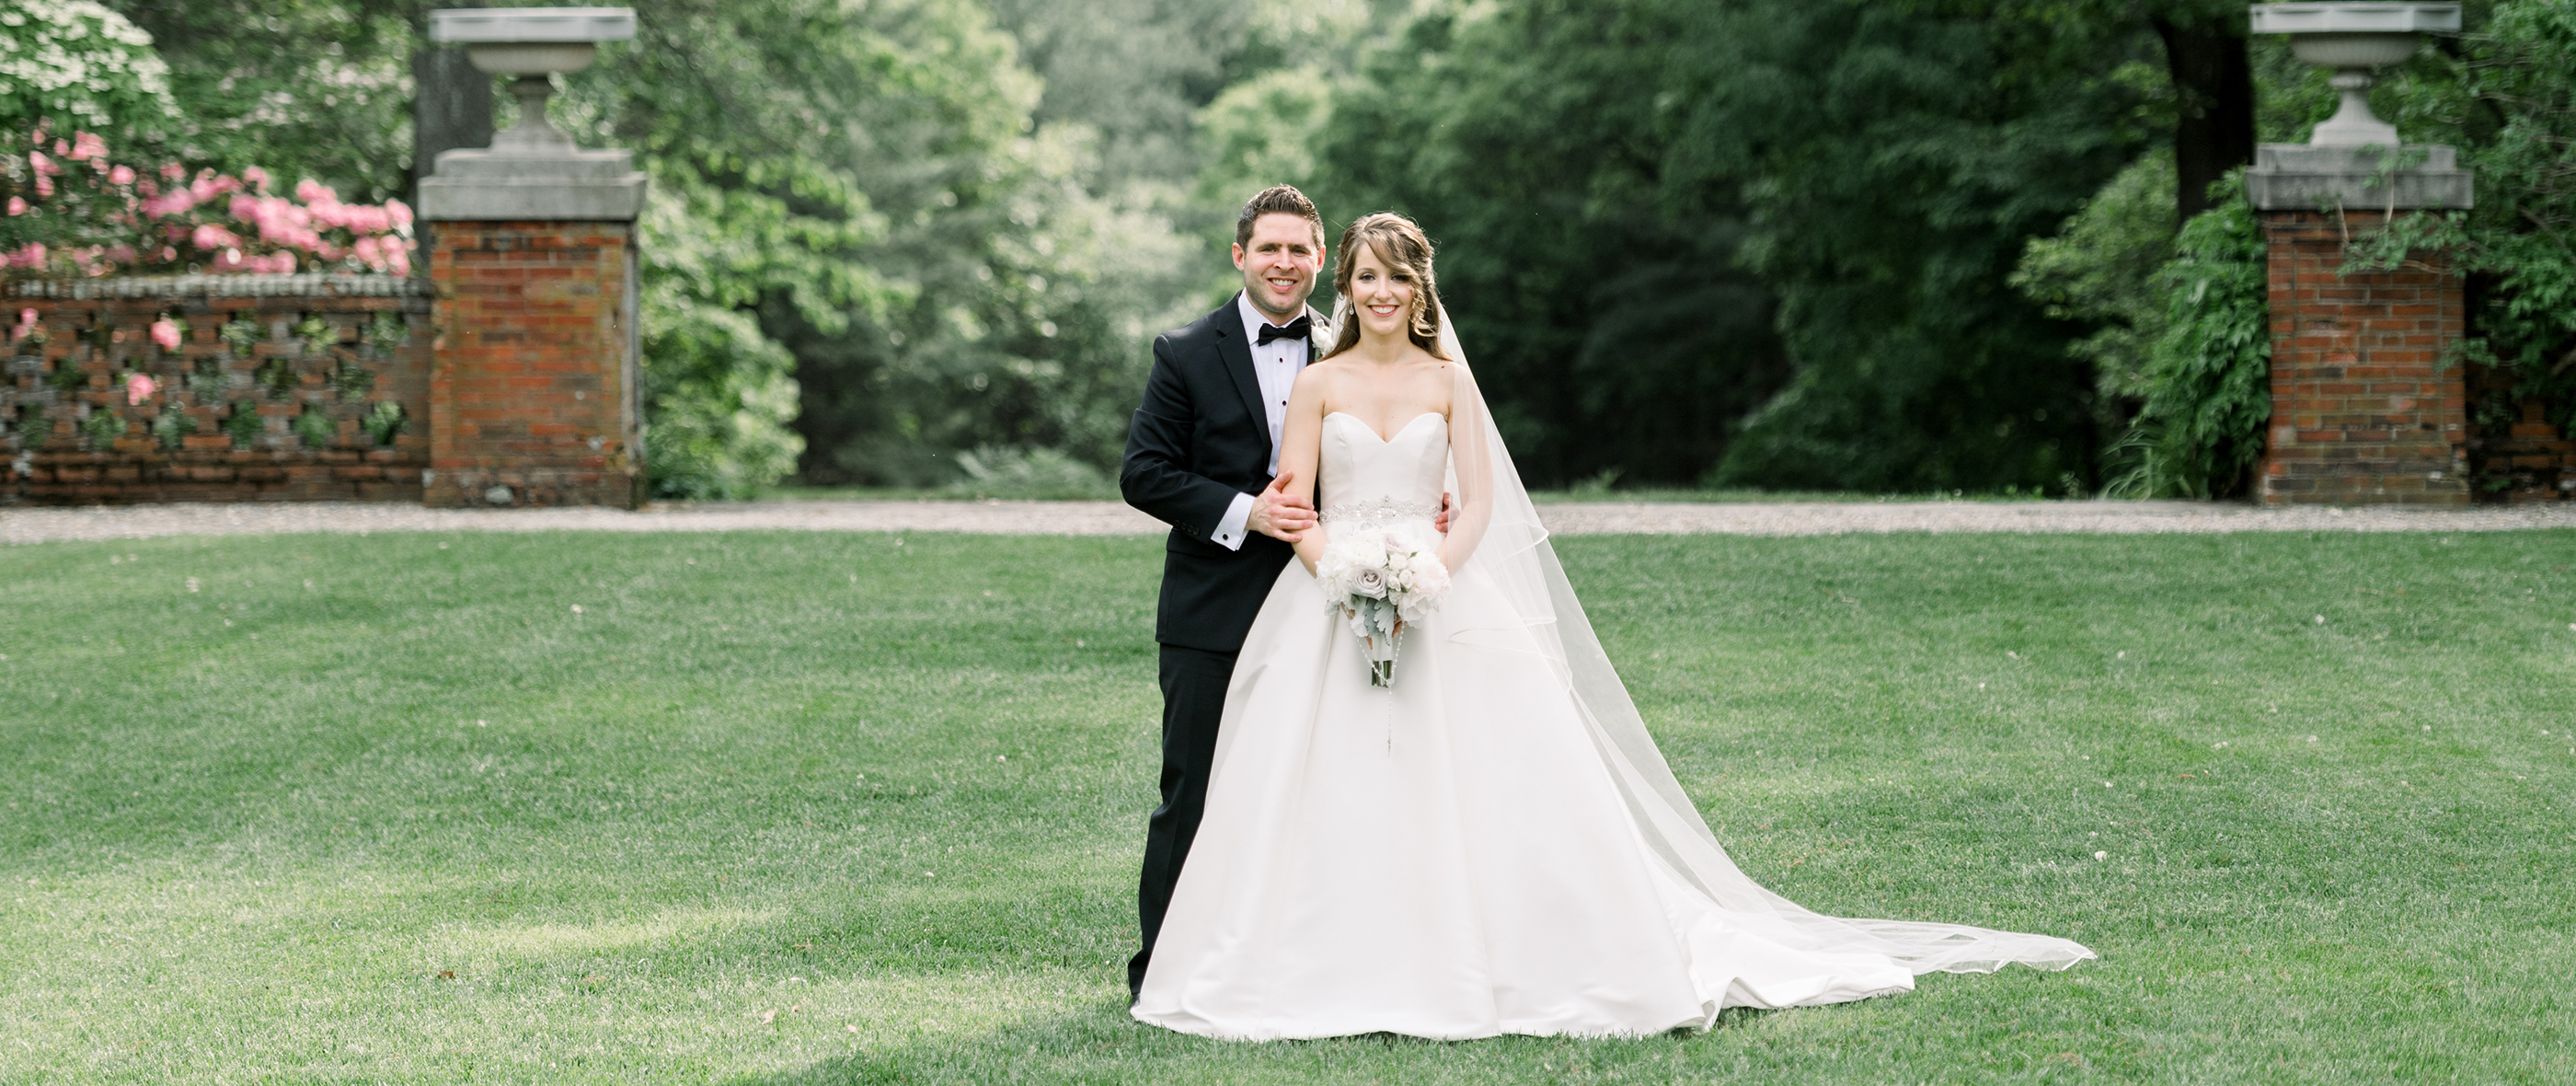 NATE + LAURA | BLUE HILL COUNTRY CLUB WEDDING